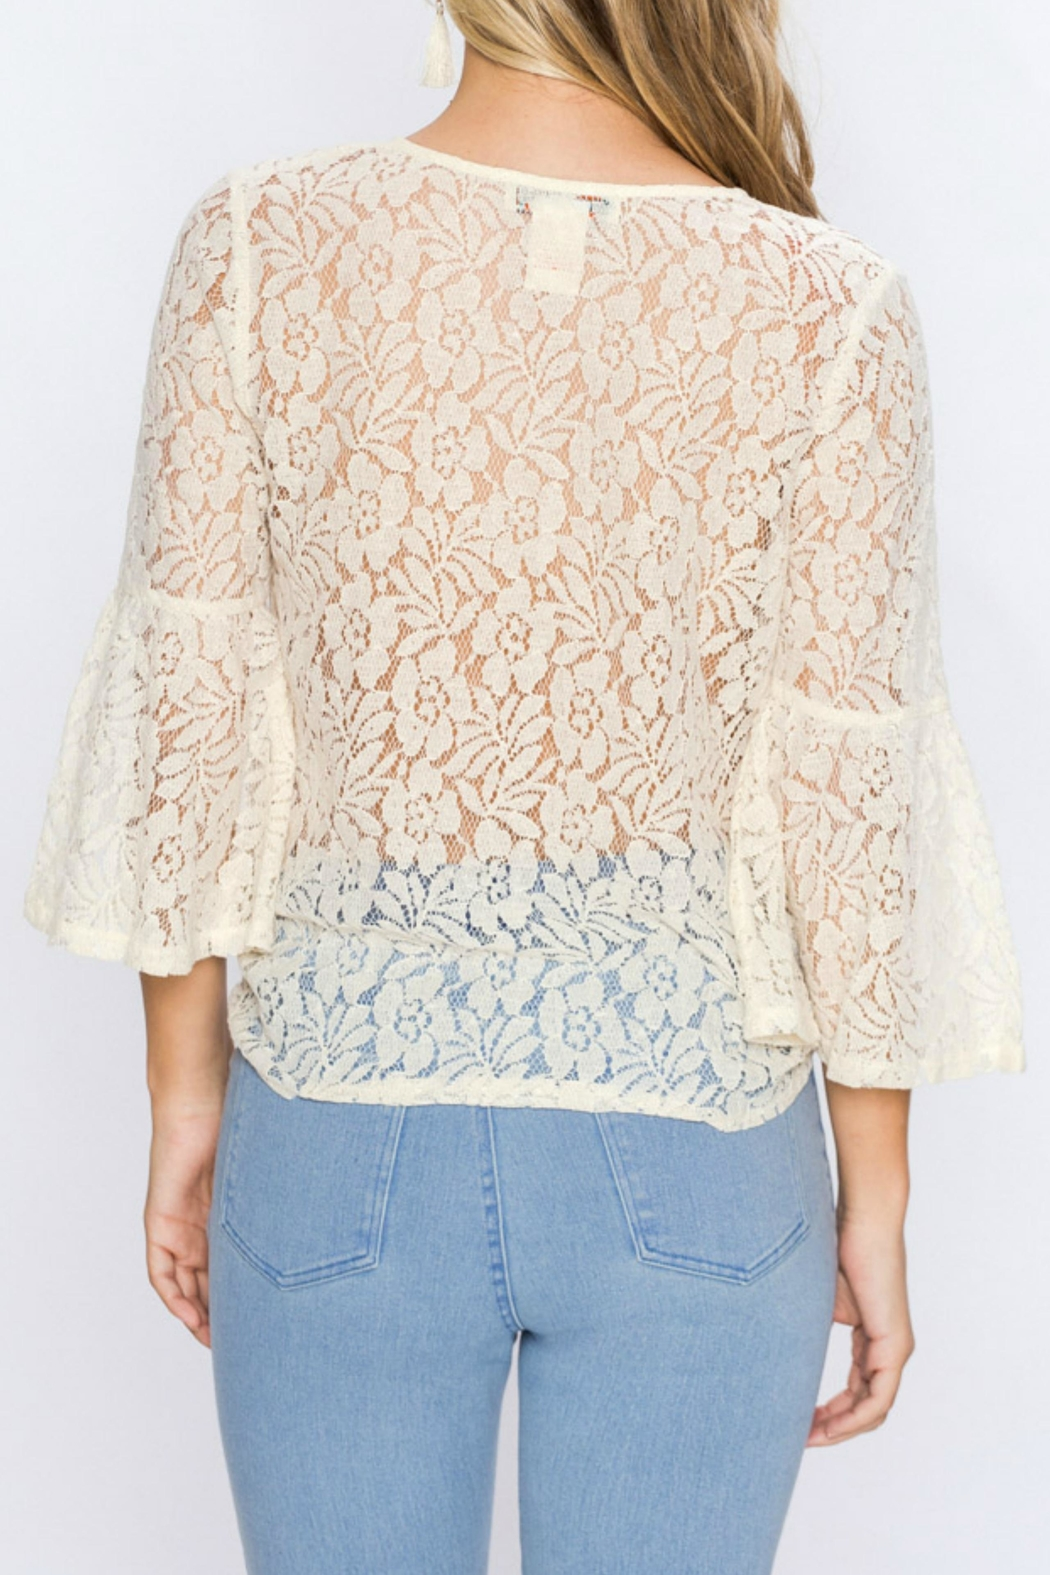 Flying Tomato Lacey Embroidered Top - Front Full Image